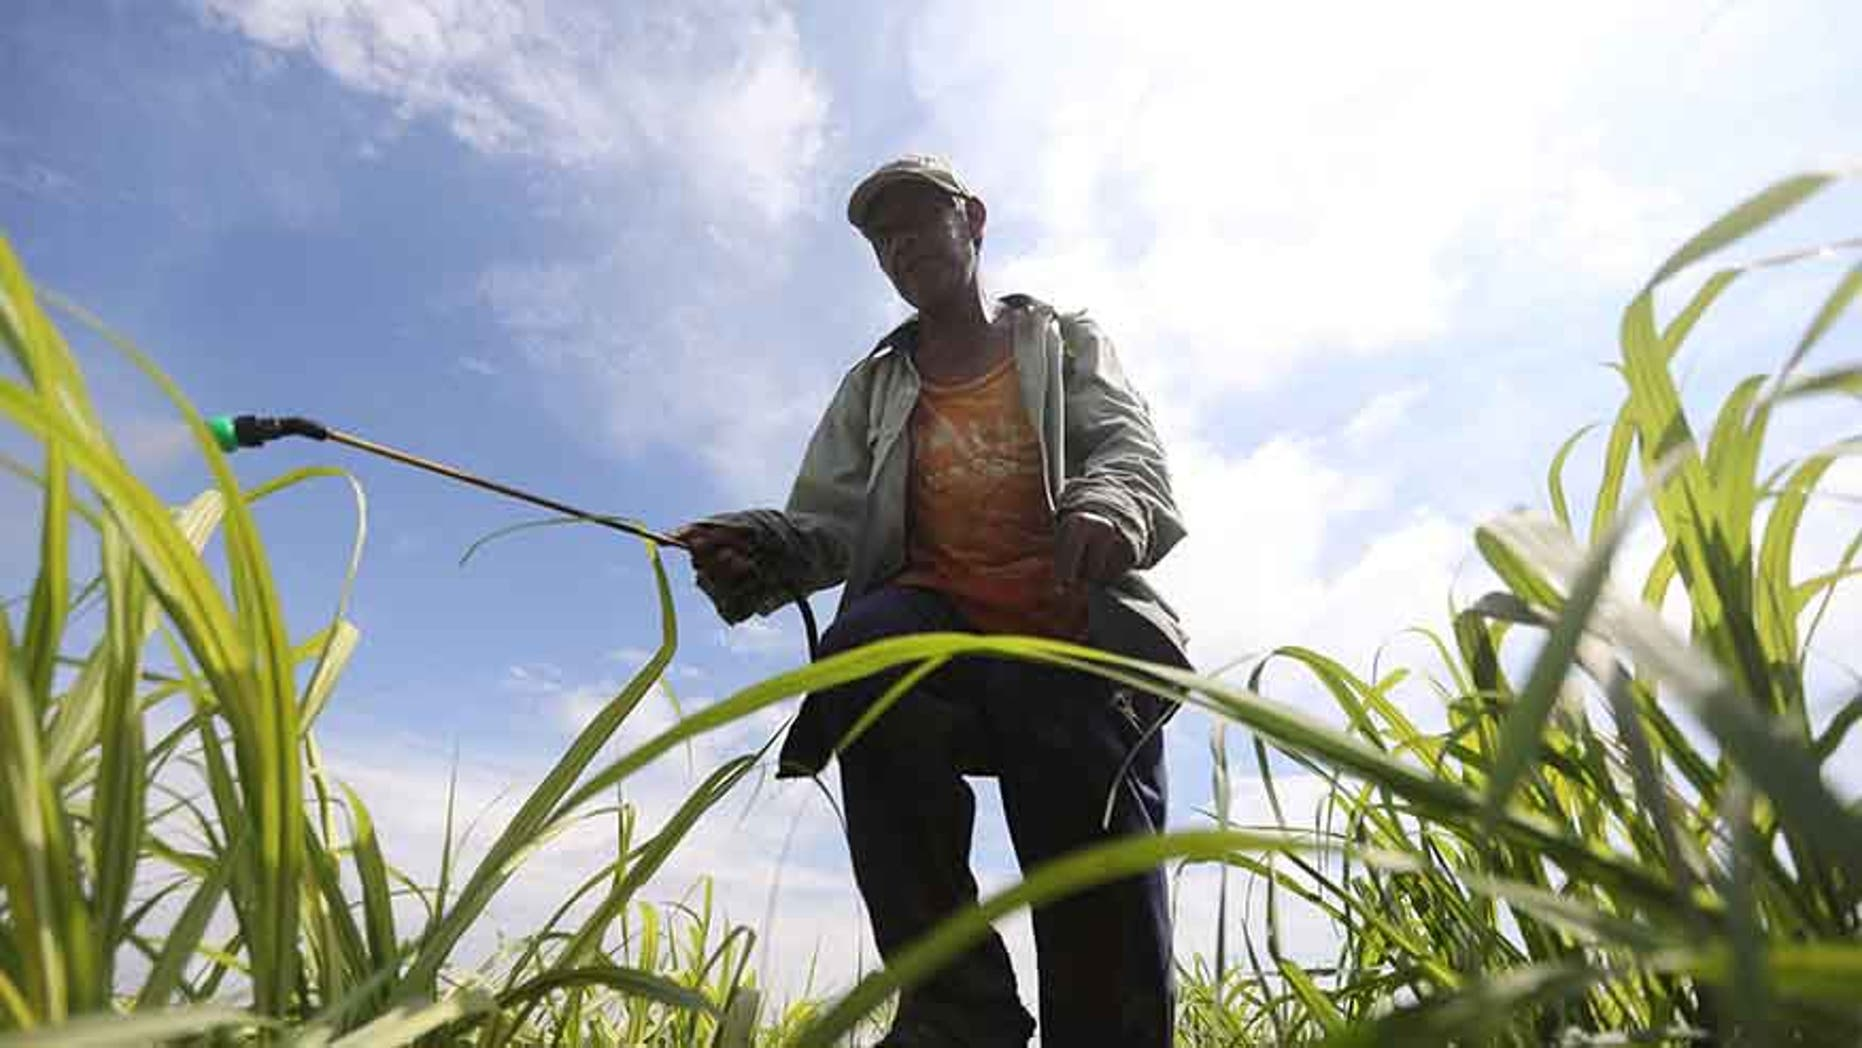 Worker sprays fertilizer in a sugar cane field in Zacatepec de Hidalgo, in Morelos state, Mexico.